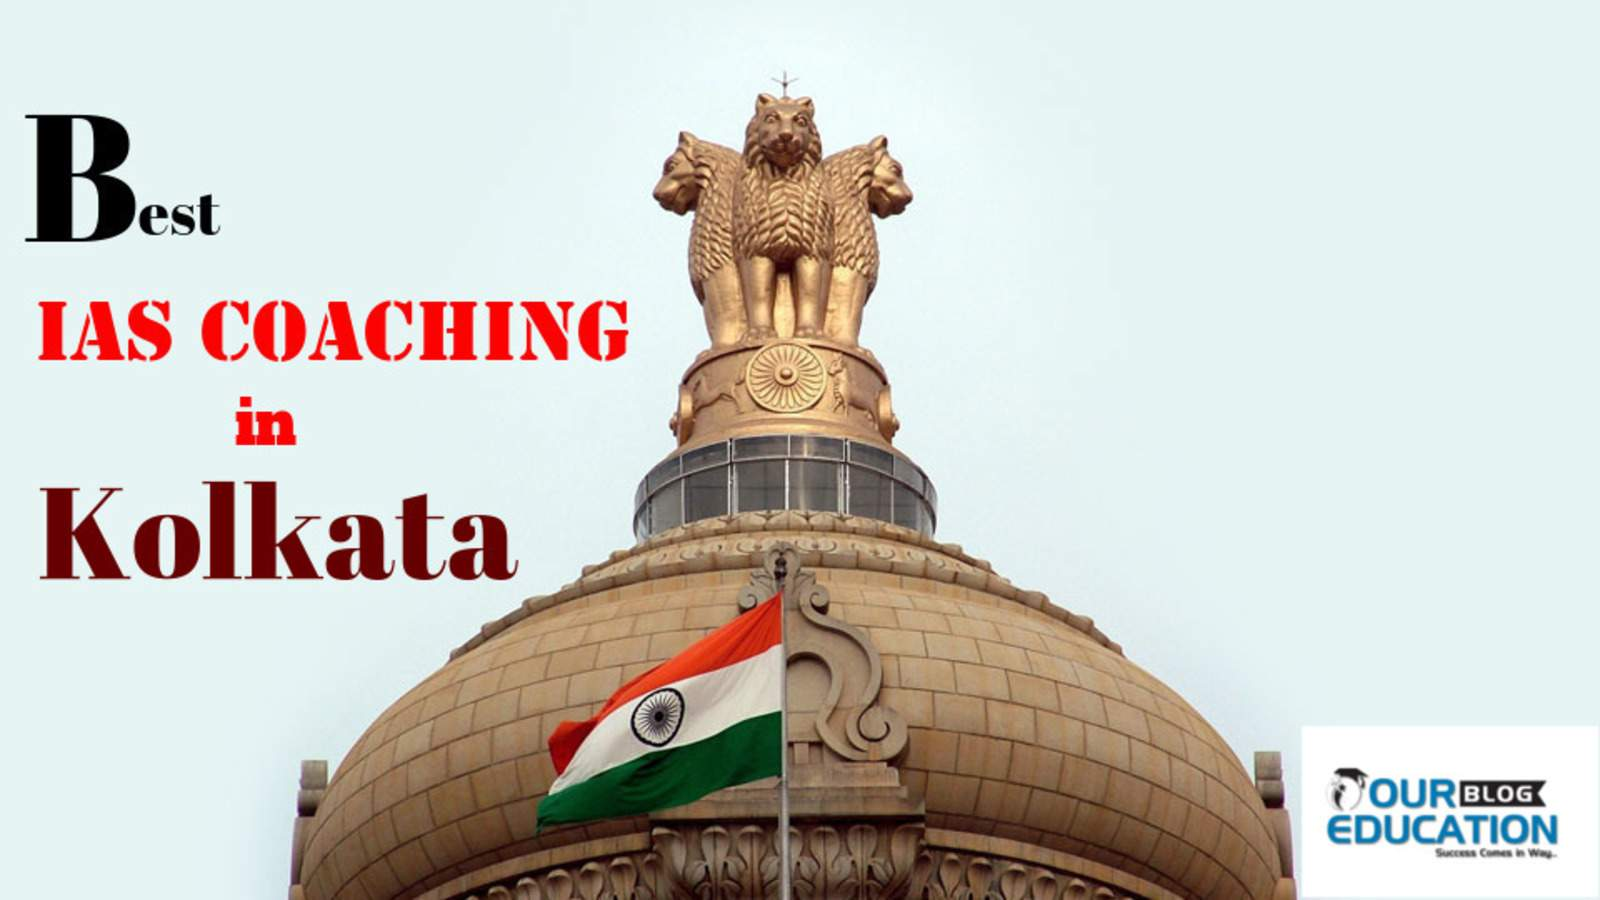 Top 10 IAS Coaching Institutes in Kolkata - UPSC Topper Strategy